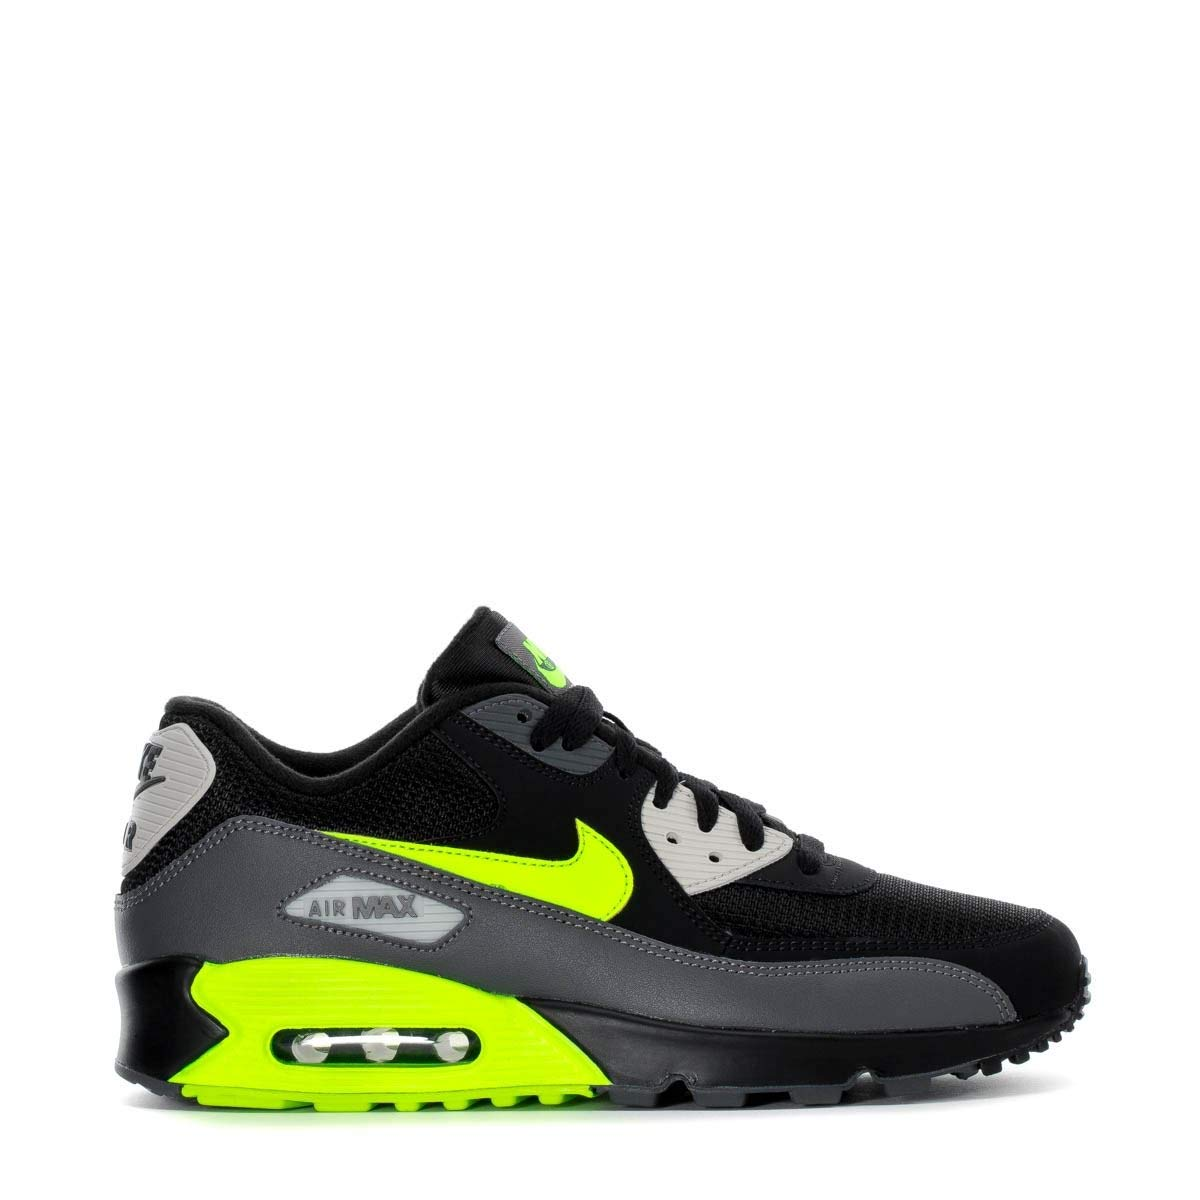 new product bcbc6 536af Galleon - Nike Mens Air Max 90 Essential Running Shoes Dark Grey Volt Black Bone  AJ1285-015 Size 10